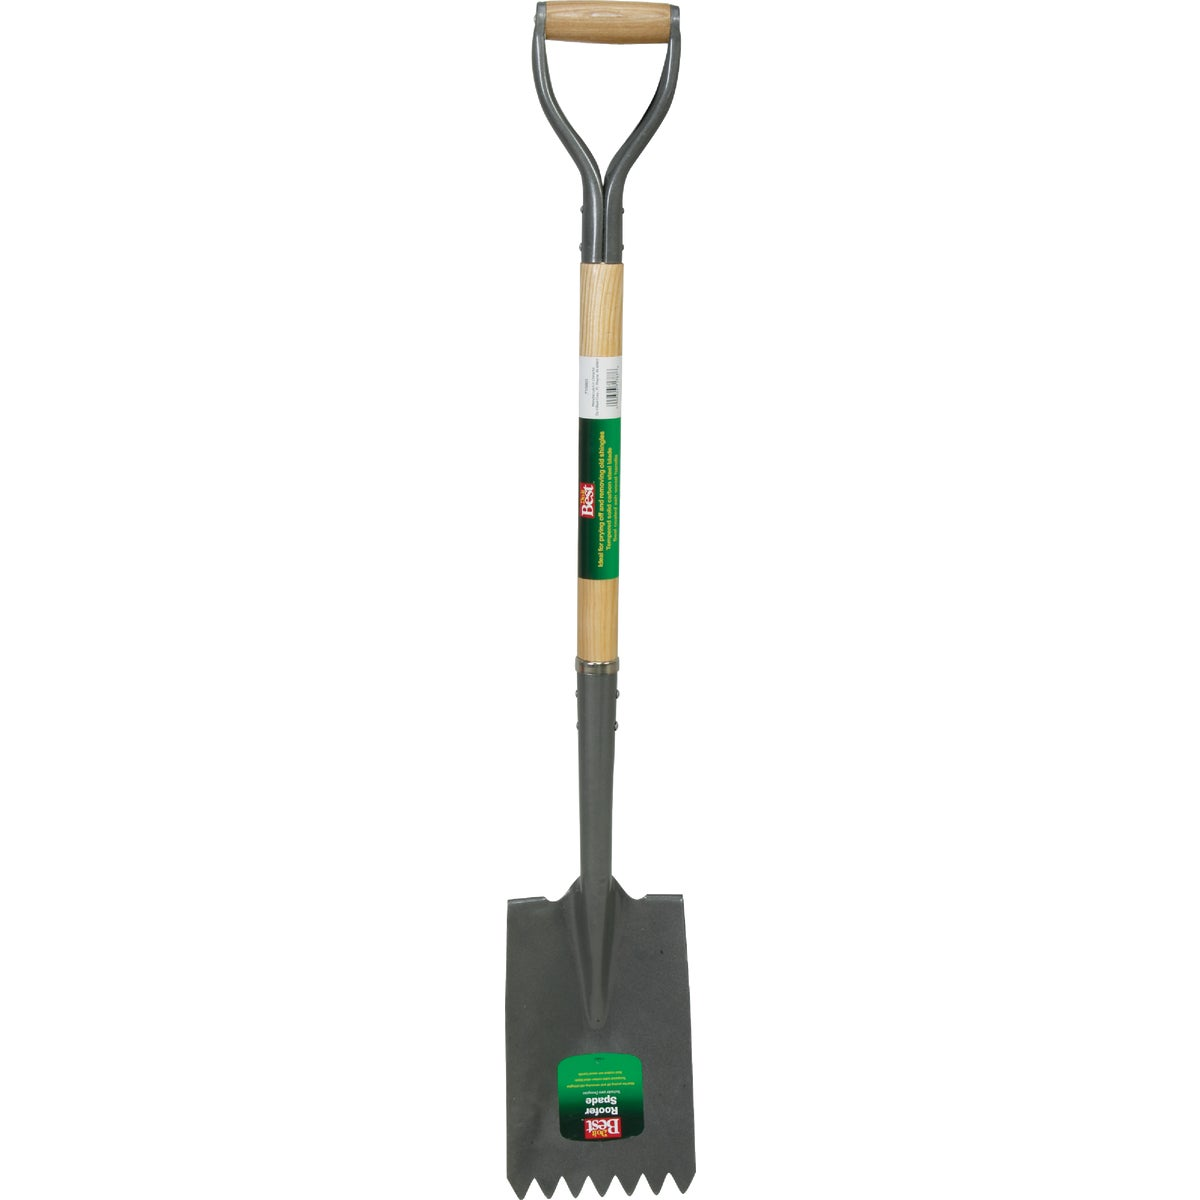 D-HDL ROOFER SPADE - YN-F2-1-1Y by Do it Best